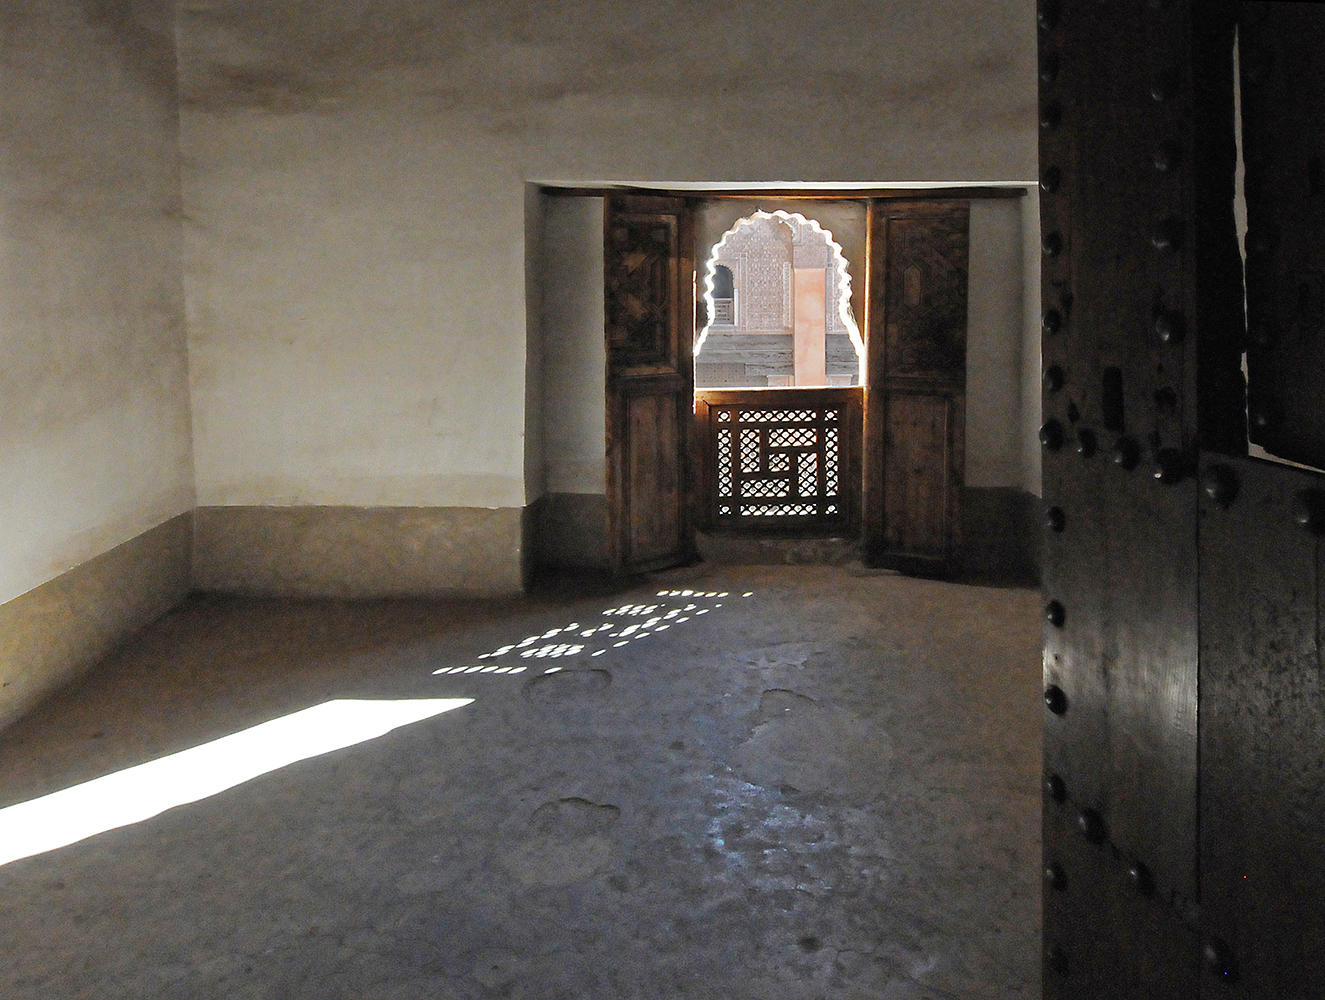 Madrassa room in Morocco with light streaming in window Architectural Photography